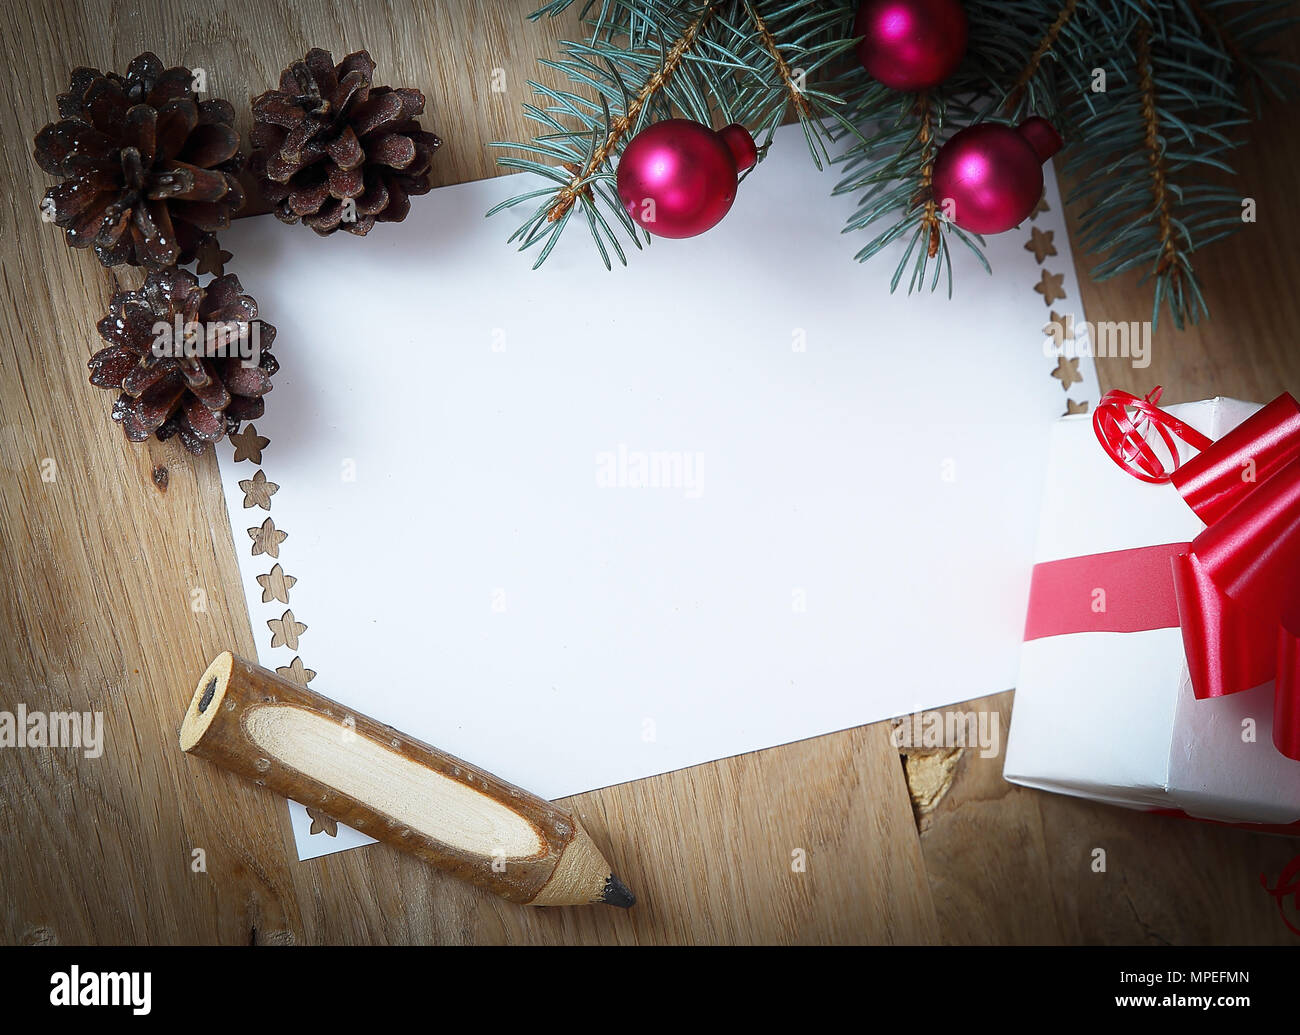 blank christmas card and ornaments on wooden background - Christmas Card Ornaments